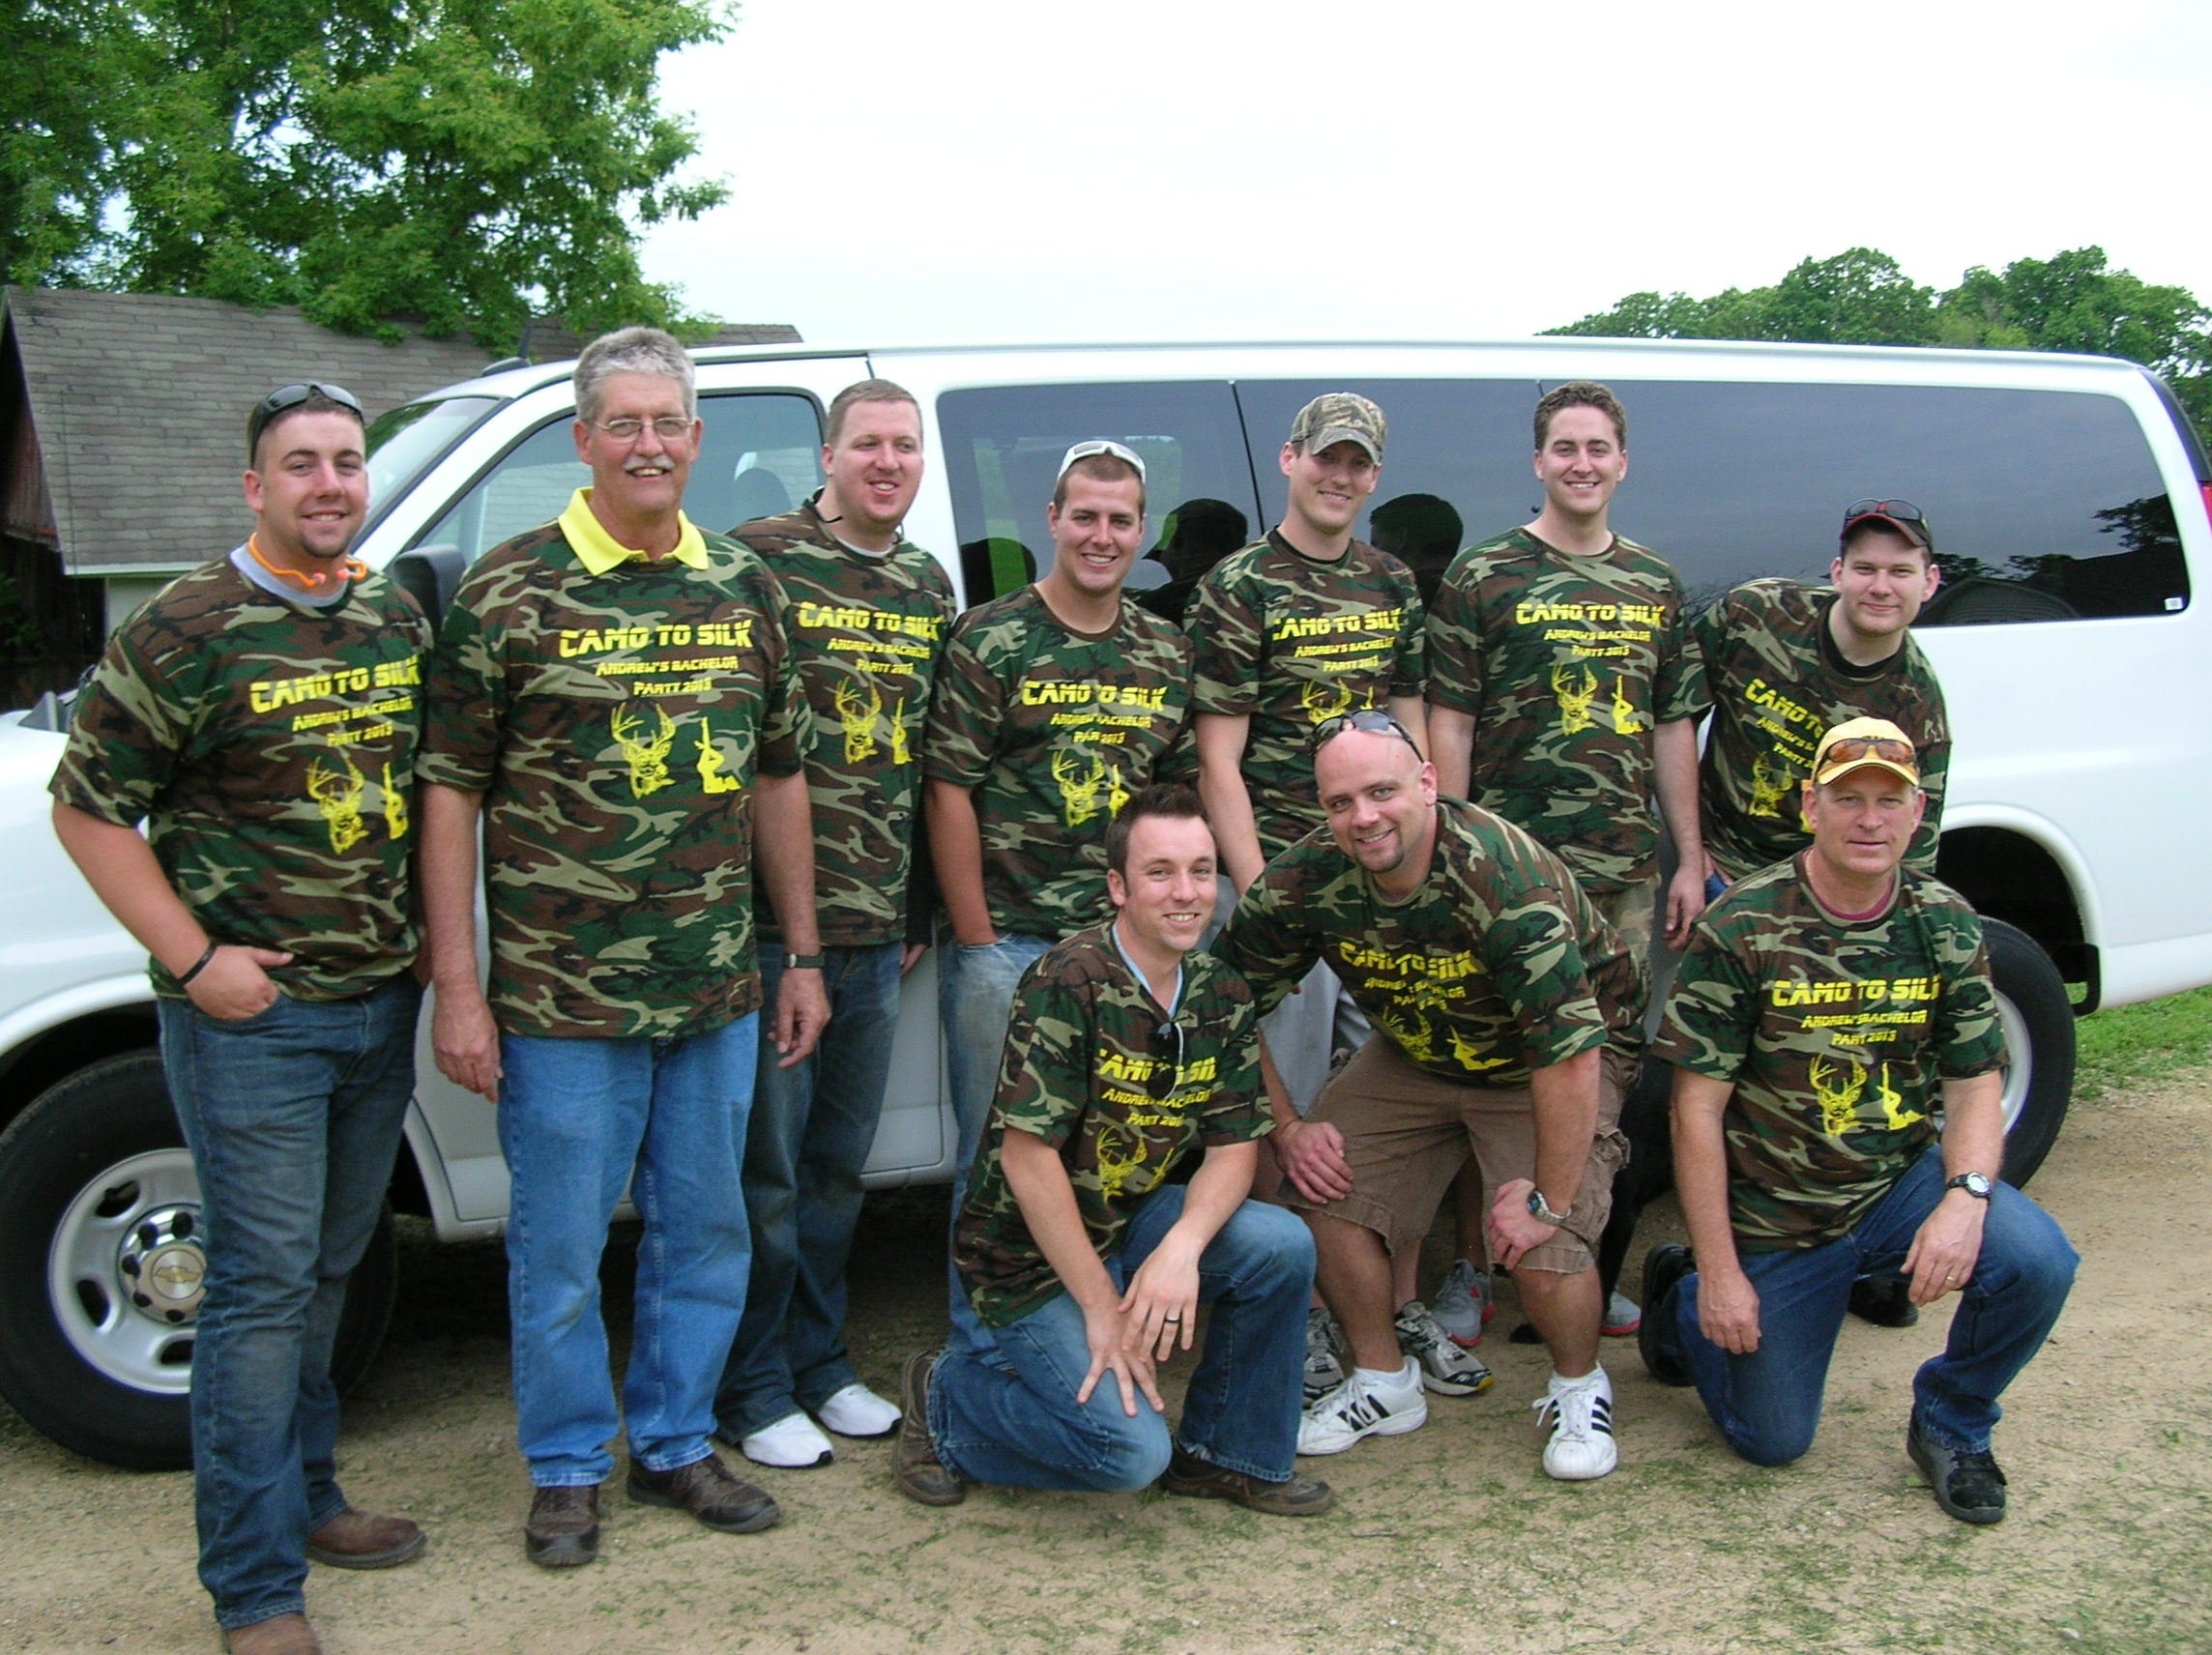 Design your own t shirt military - Andrew S Bachelor Party 2013 Camo To Silk T Shirt Photo